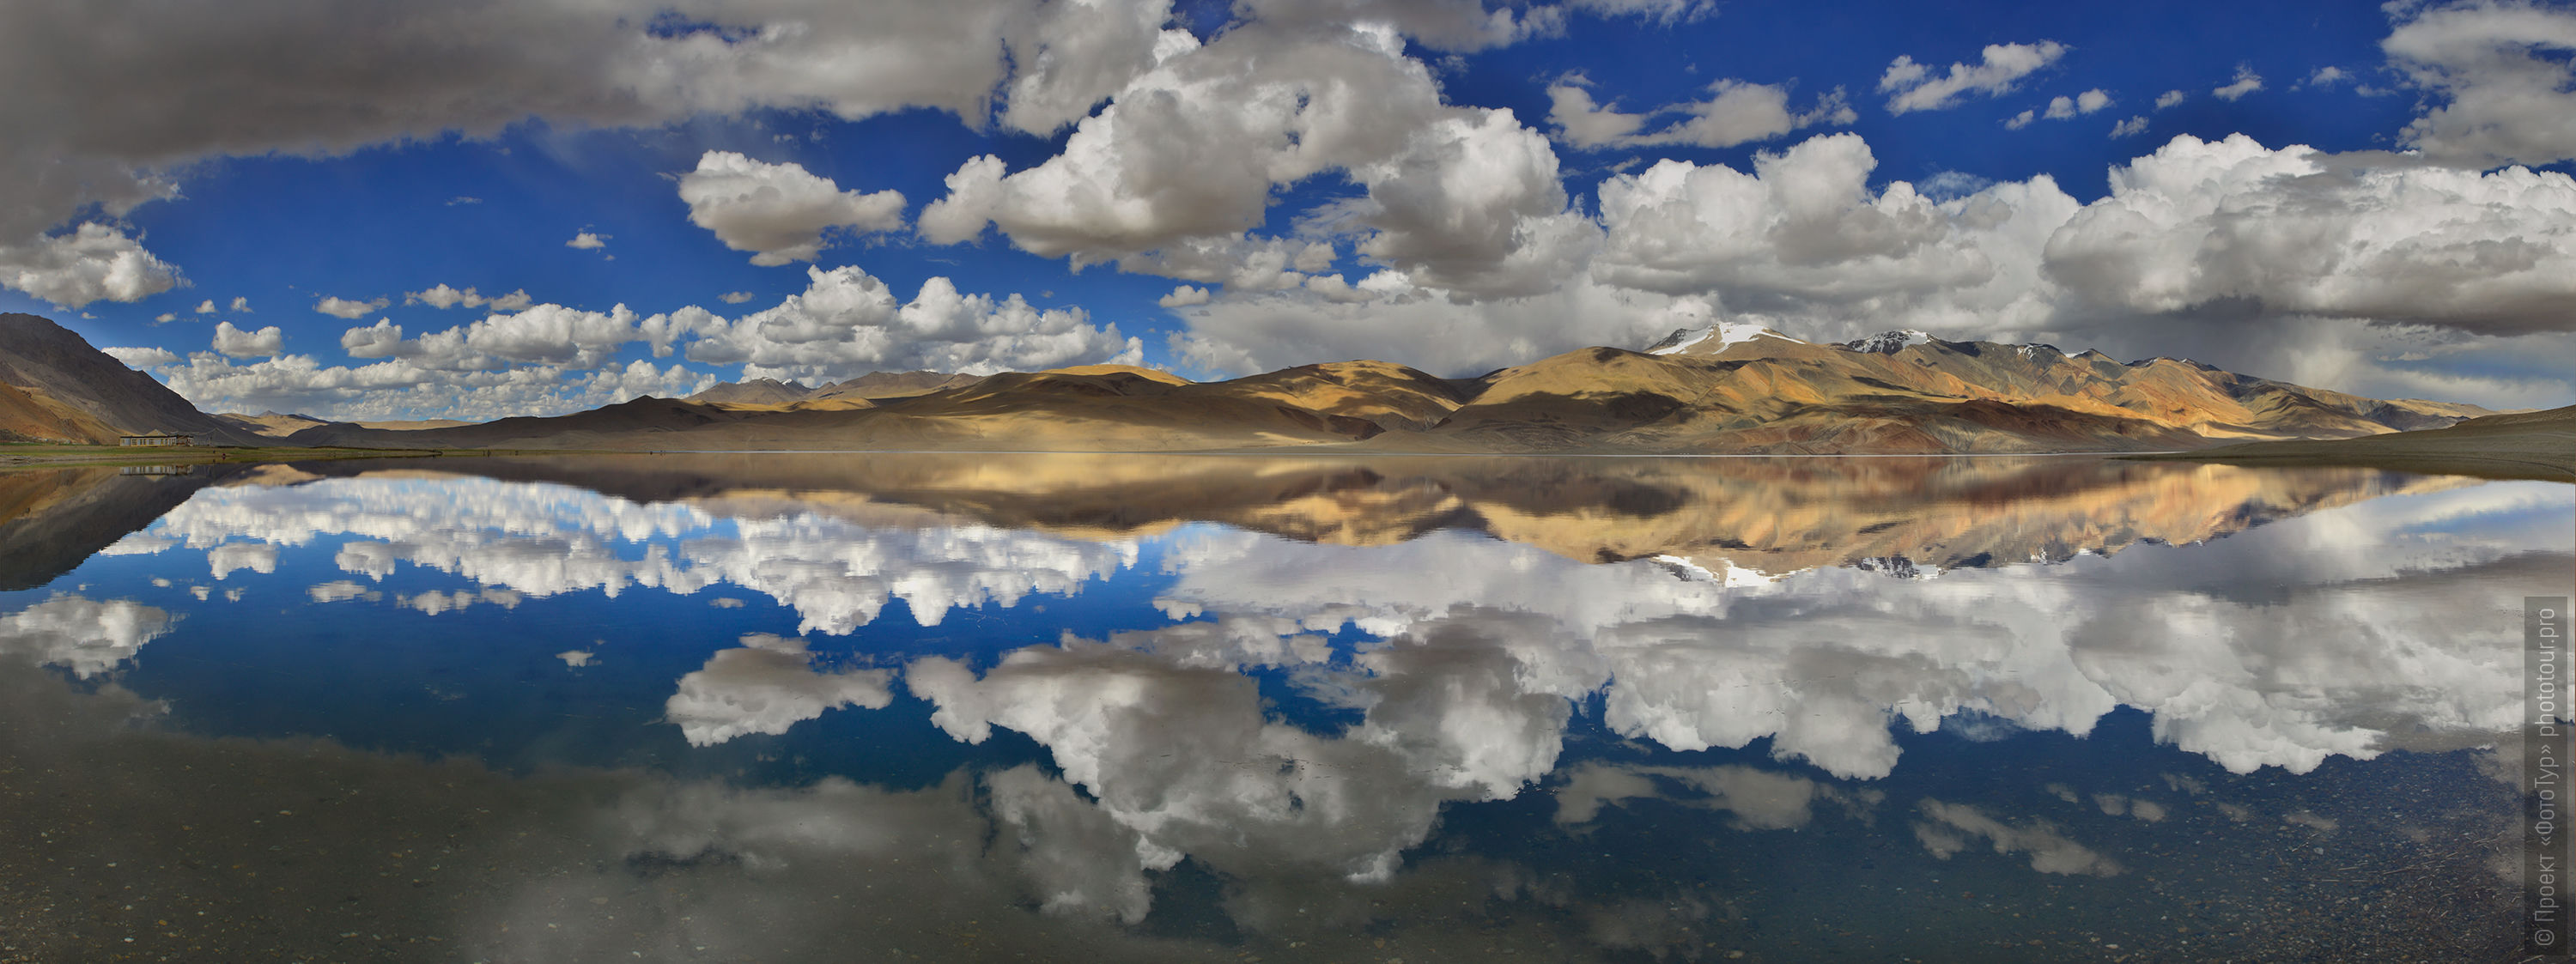 Mirror reflection of Lake Tso Moriri. Expedition Tibet Lake-2: Pangong, Tso Moriri, Tso Kar, Tso Startsapak, Leh-Manali highway.